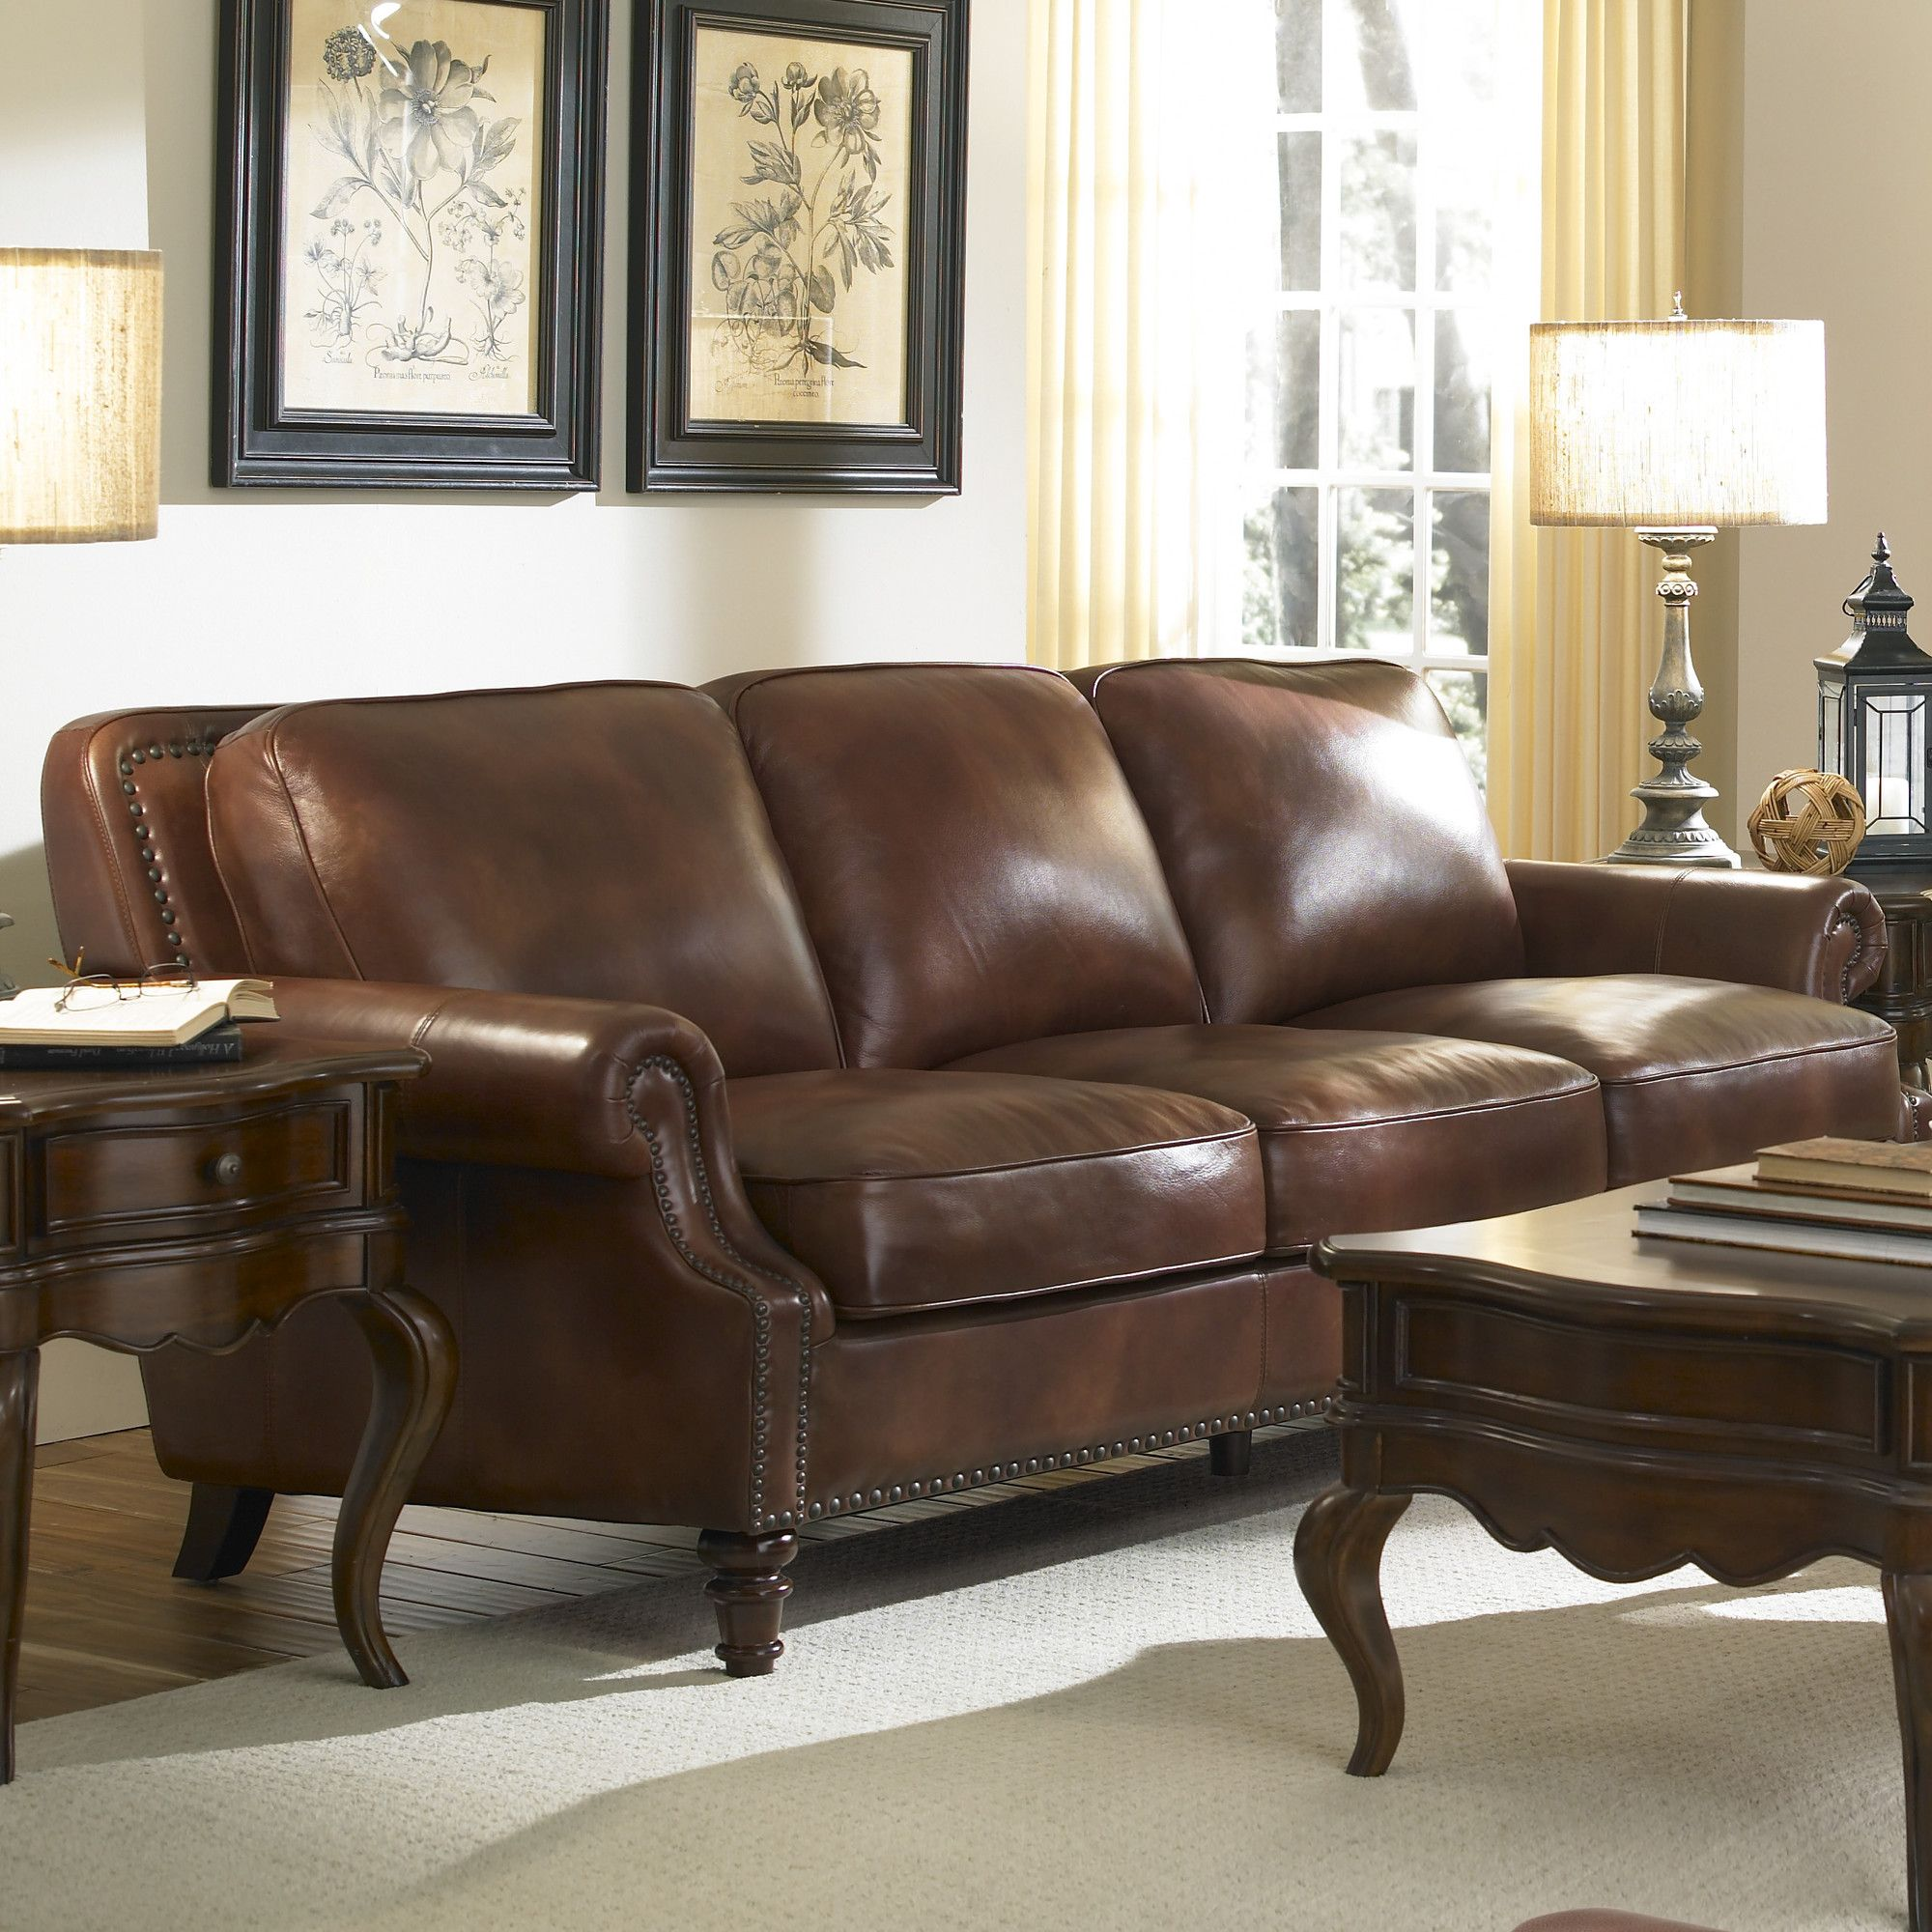 Lazzaro Leather Leather Sofa U0026 Reviews | Wayfair